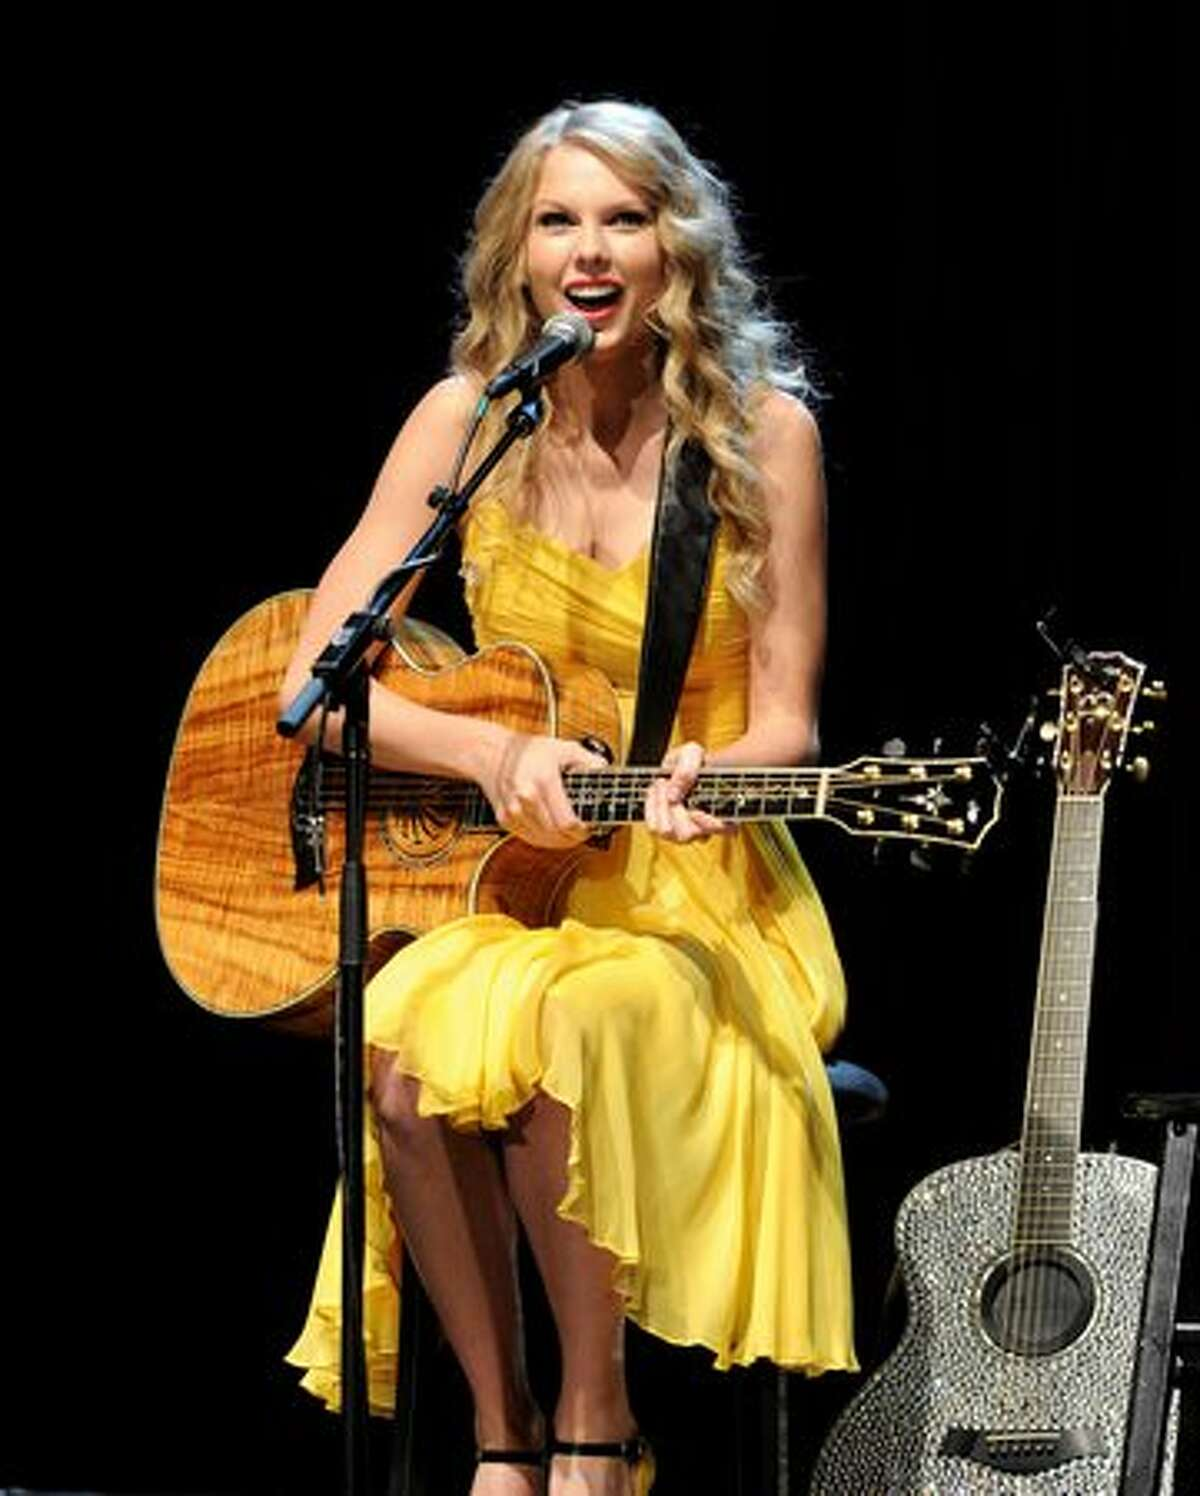 Singer/songwriter Taylor Swift performs at the Country Music Hall of Fame & Museum's